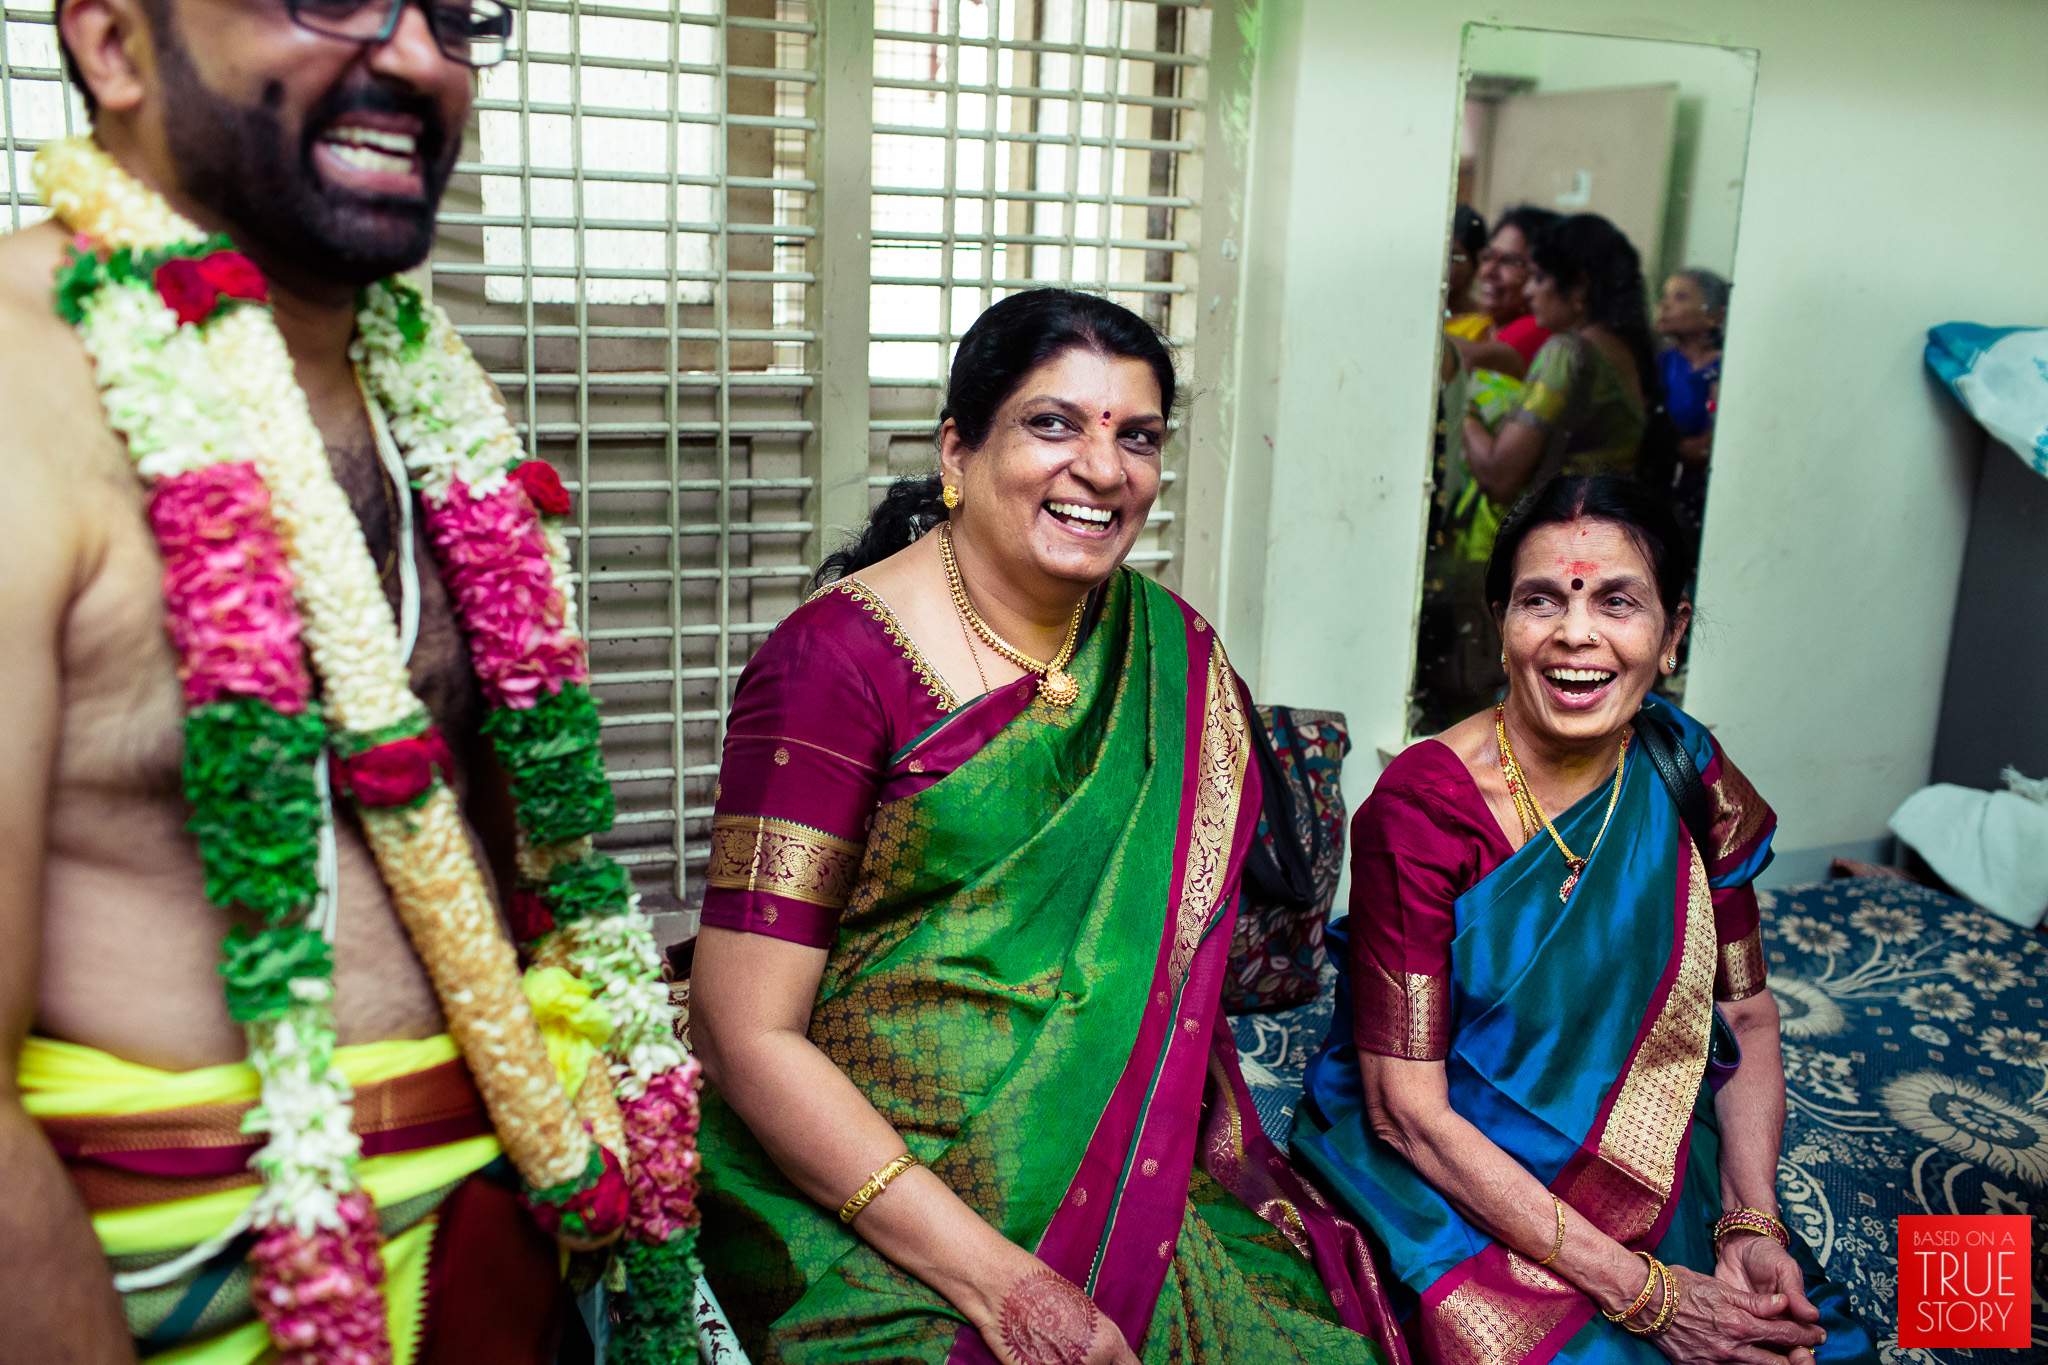 tambrahm-candid-wedding-photographer-bangalore-0067.jpg